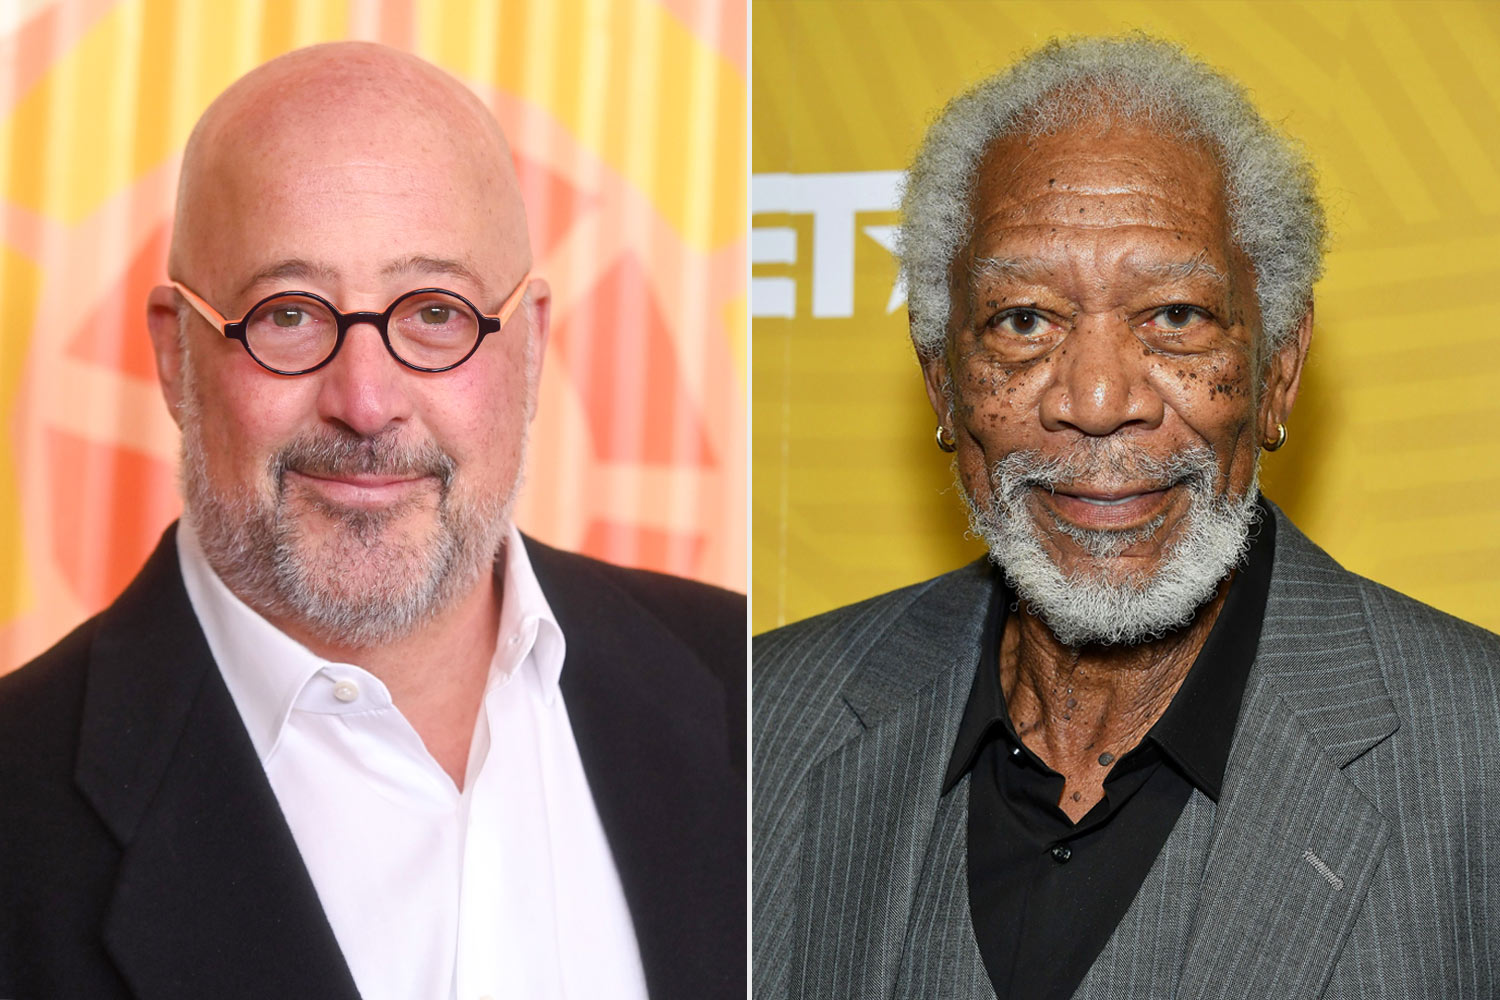 Andrew Zimmern and Morgan Freeman